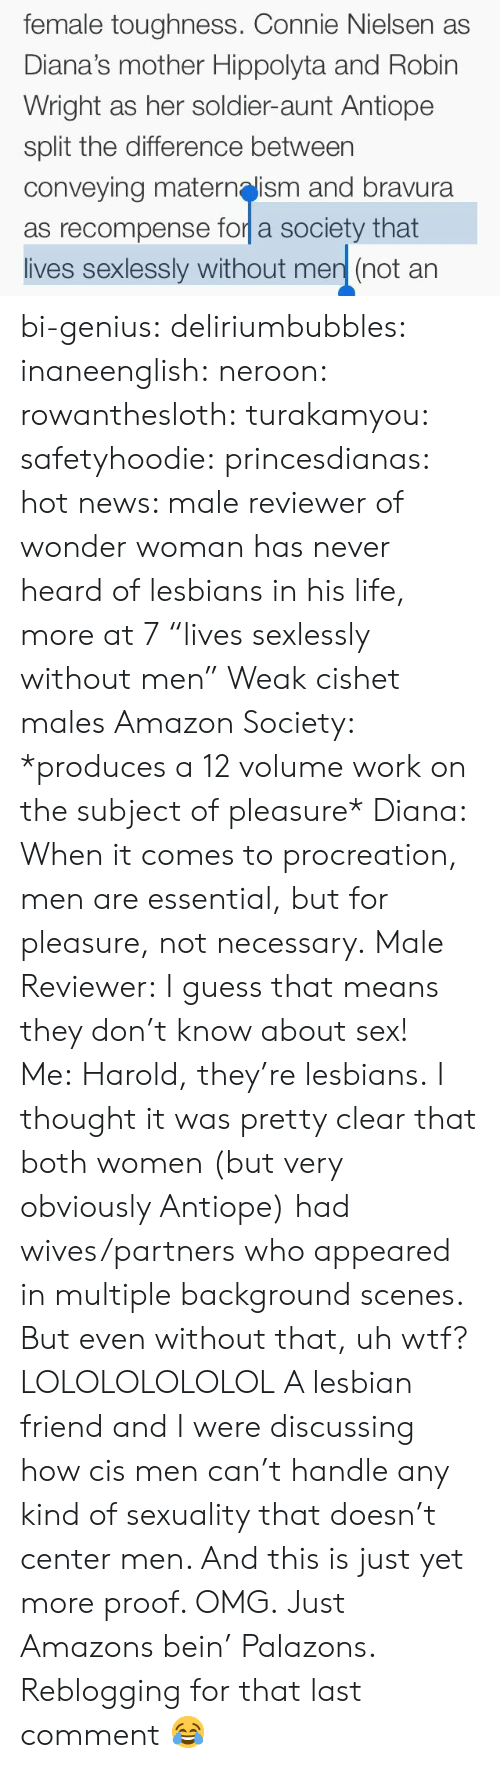 """Amazon, Gif, and Lesbians: female toughness. Connie Nielsen as  Diana's mother Hippolyta and Robin  Wright as her soldier-aunt Antiope  split the difference between  conveying maternelism and bravura  as recompense for a society that  lives sexlessly without men (not an bi-genius: deliriumbubbles:  inaneenglish:  neroon:   rowanthesloth:  turakamyou:  safetyhoodie:  princesdianas: hot news: male reviewer of wonder woman has never heard of lesbians in his life, more at 7   """"lives sexlessly without men""""   Weak cishet males  Amazon Society: *produces a 12 volume work on the subject of pleasure* Diana: When it comes to procreation, men are essential, but for pleasure, not necessary. Male Reviewer:I guess that means they don't know about sex! Me:Harold, they're lesbians.  I thought it was pretty clear that both women (but very obviously Antiope) had wives/partners who appeared in multiple background scenes. But even without that, uh wtf?   LOLOLOLOLOLOL A lesbian friend and I were discussing how cis men can't handle any kind of sexuality that doesn't center men. And this is just yet more proof. OMG.  Just Amazons bein' Palazons.   Reblogging for that last comment 😂"""